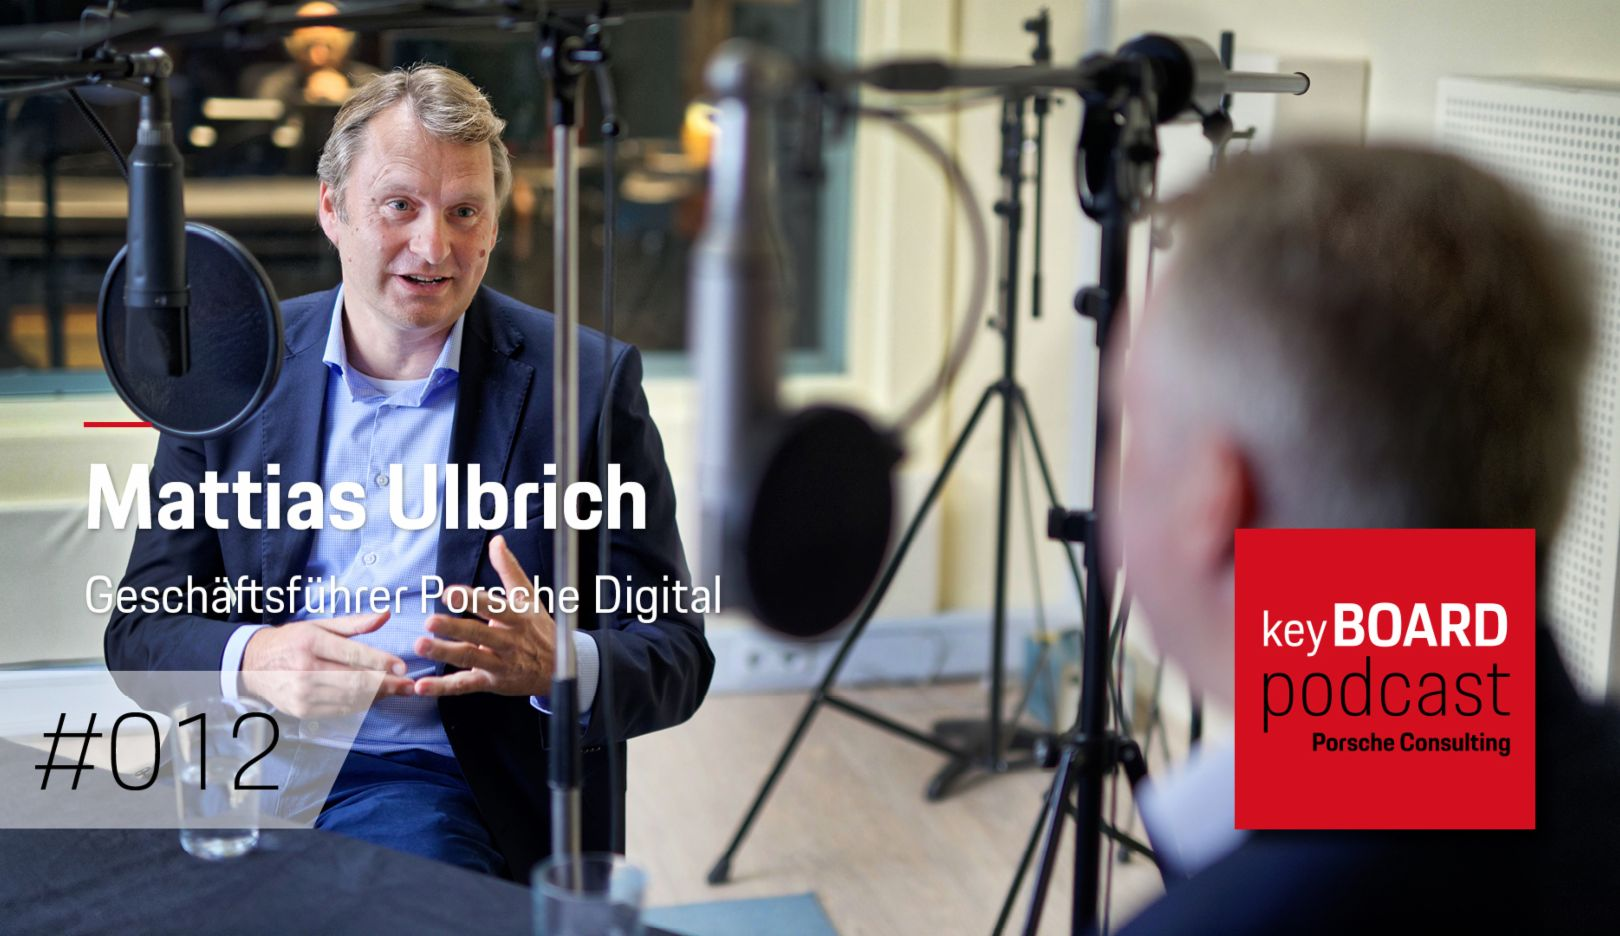 Porsche Consulting Podcast #012: Mathias Ulbrich